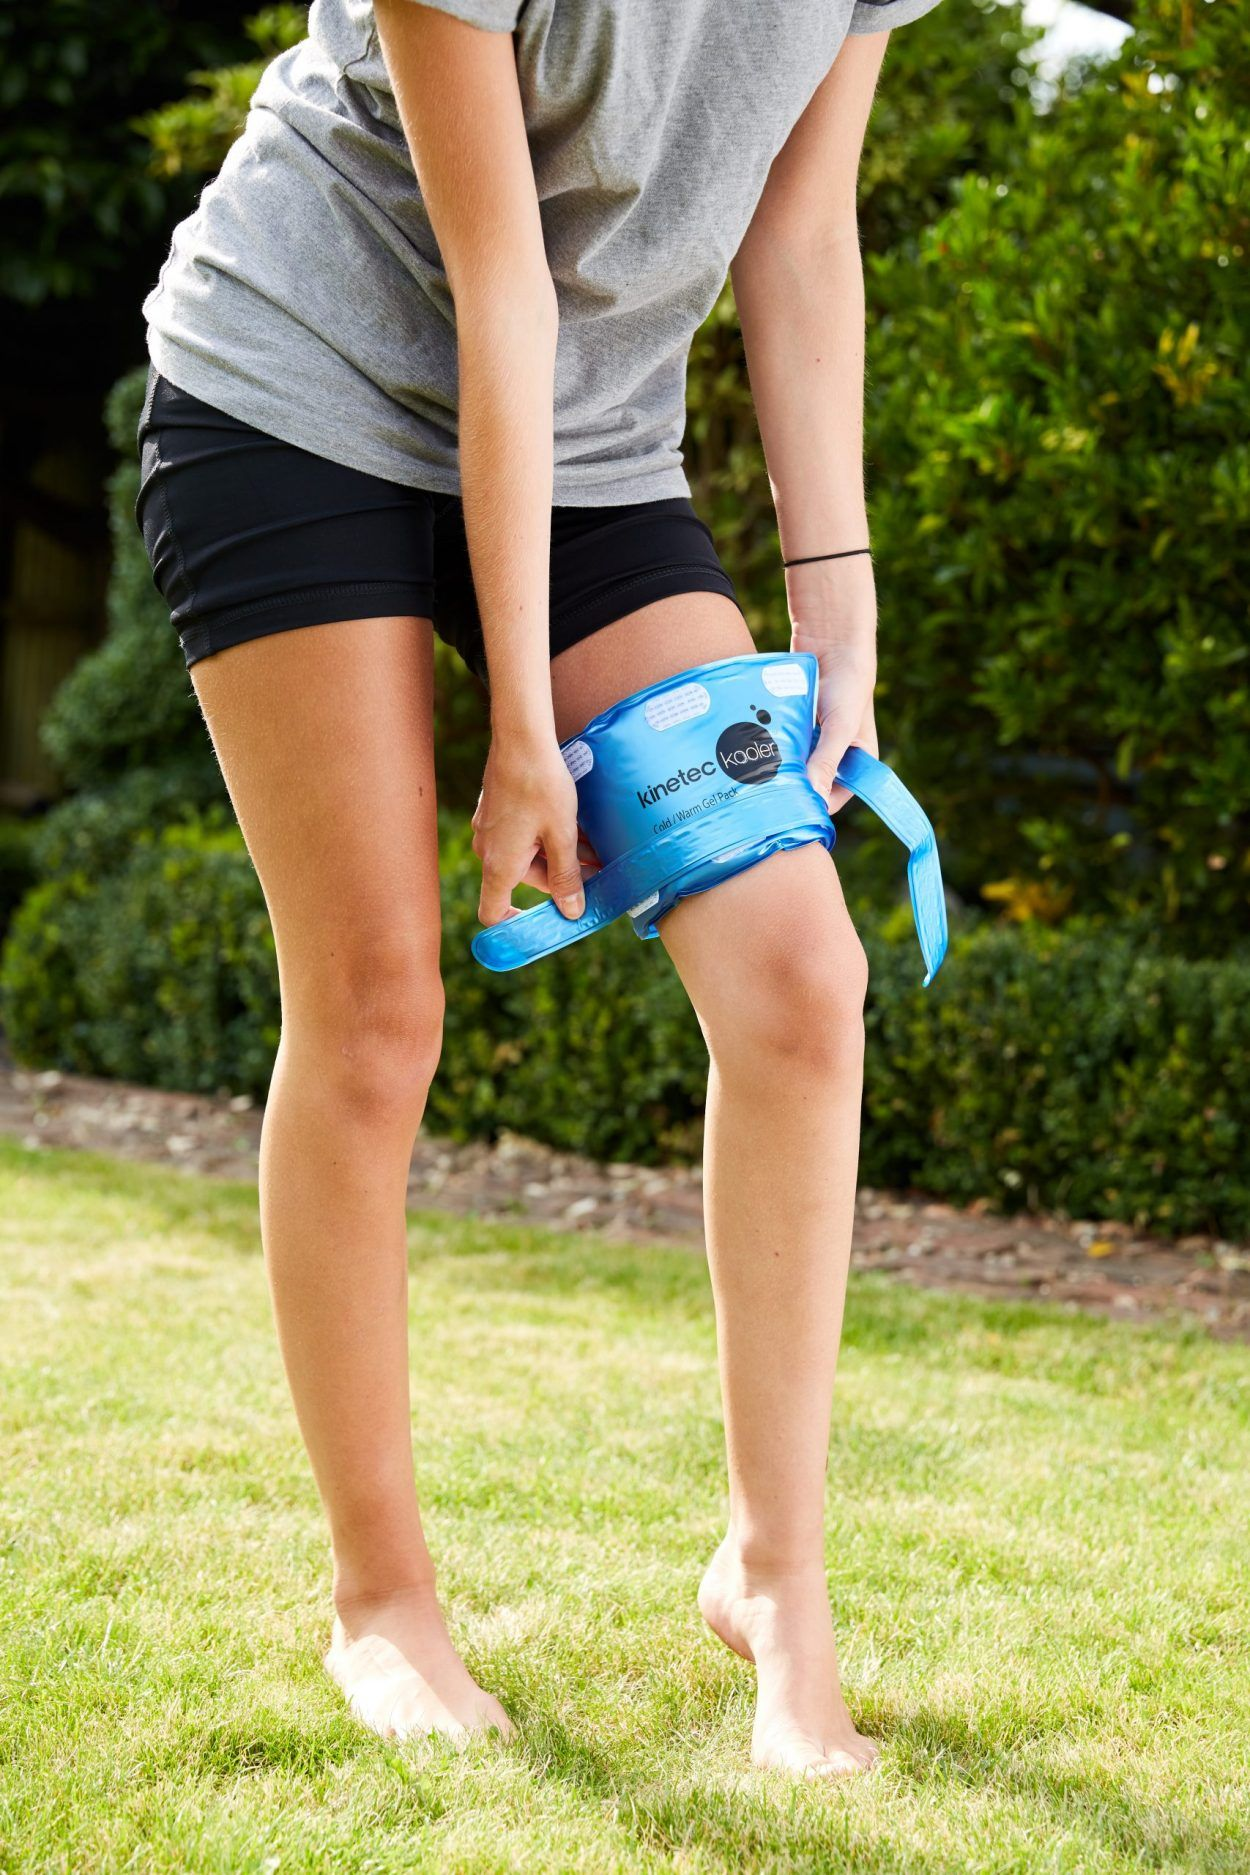 Cold pack strapped knee Female being strapped on Garden LR scaled